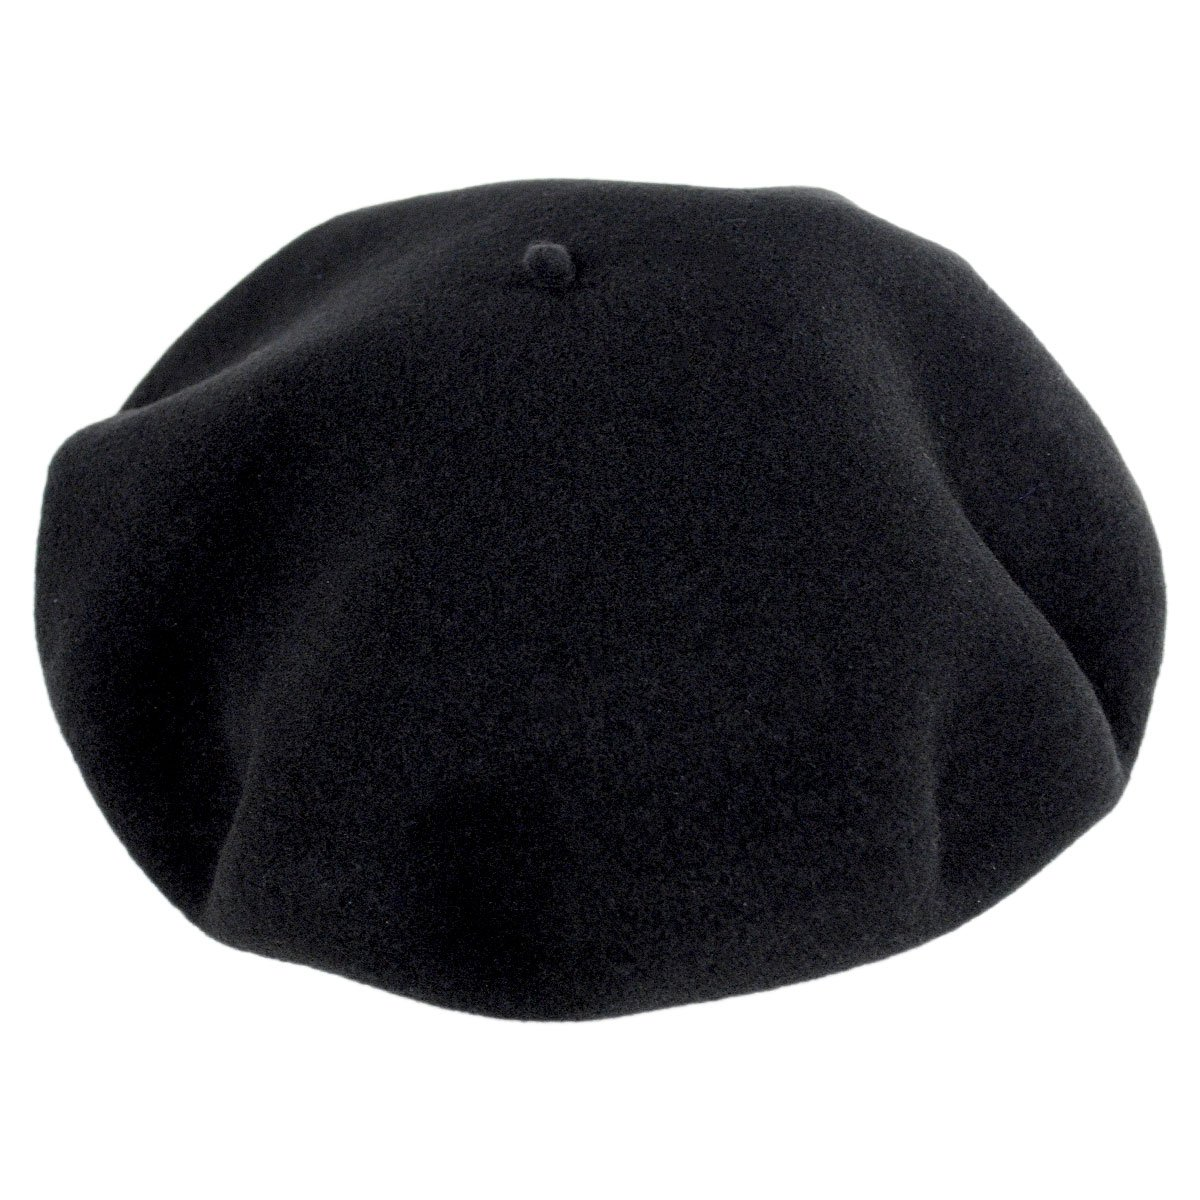 Hoquy Wool Basque Beret and Luxury Box - Black (57 cm) by Laulhere